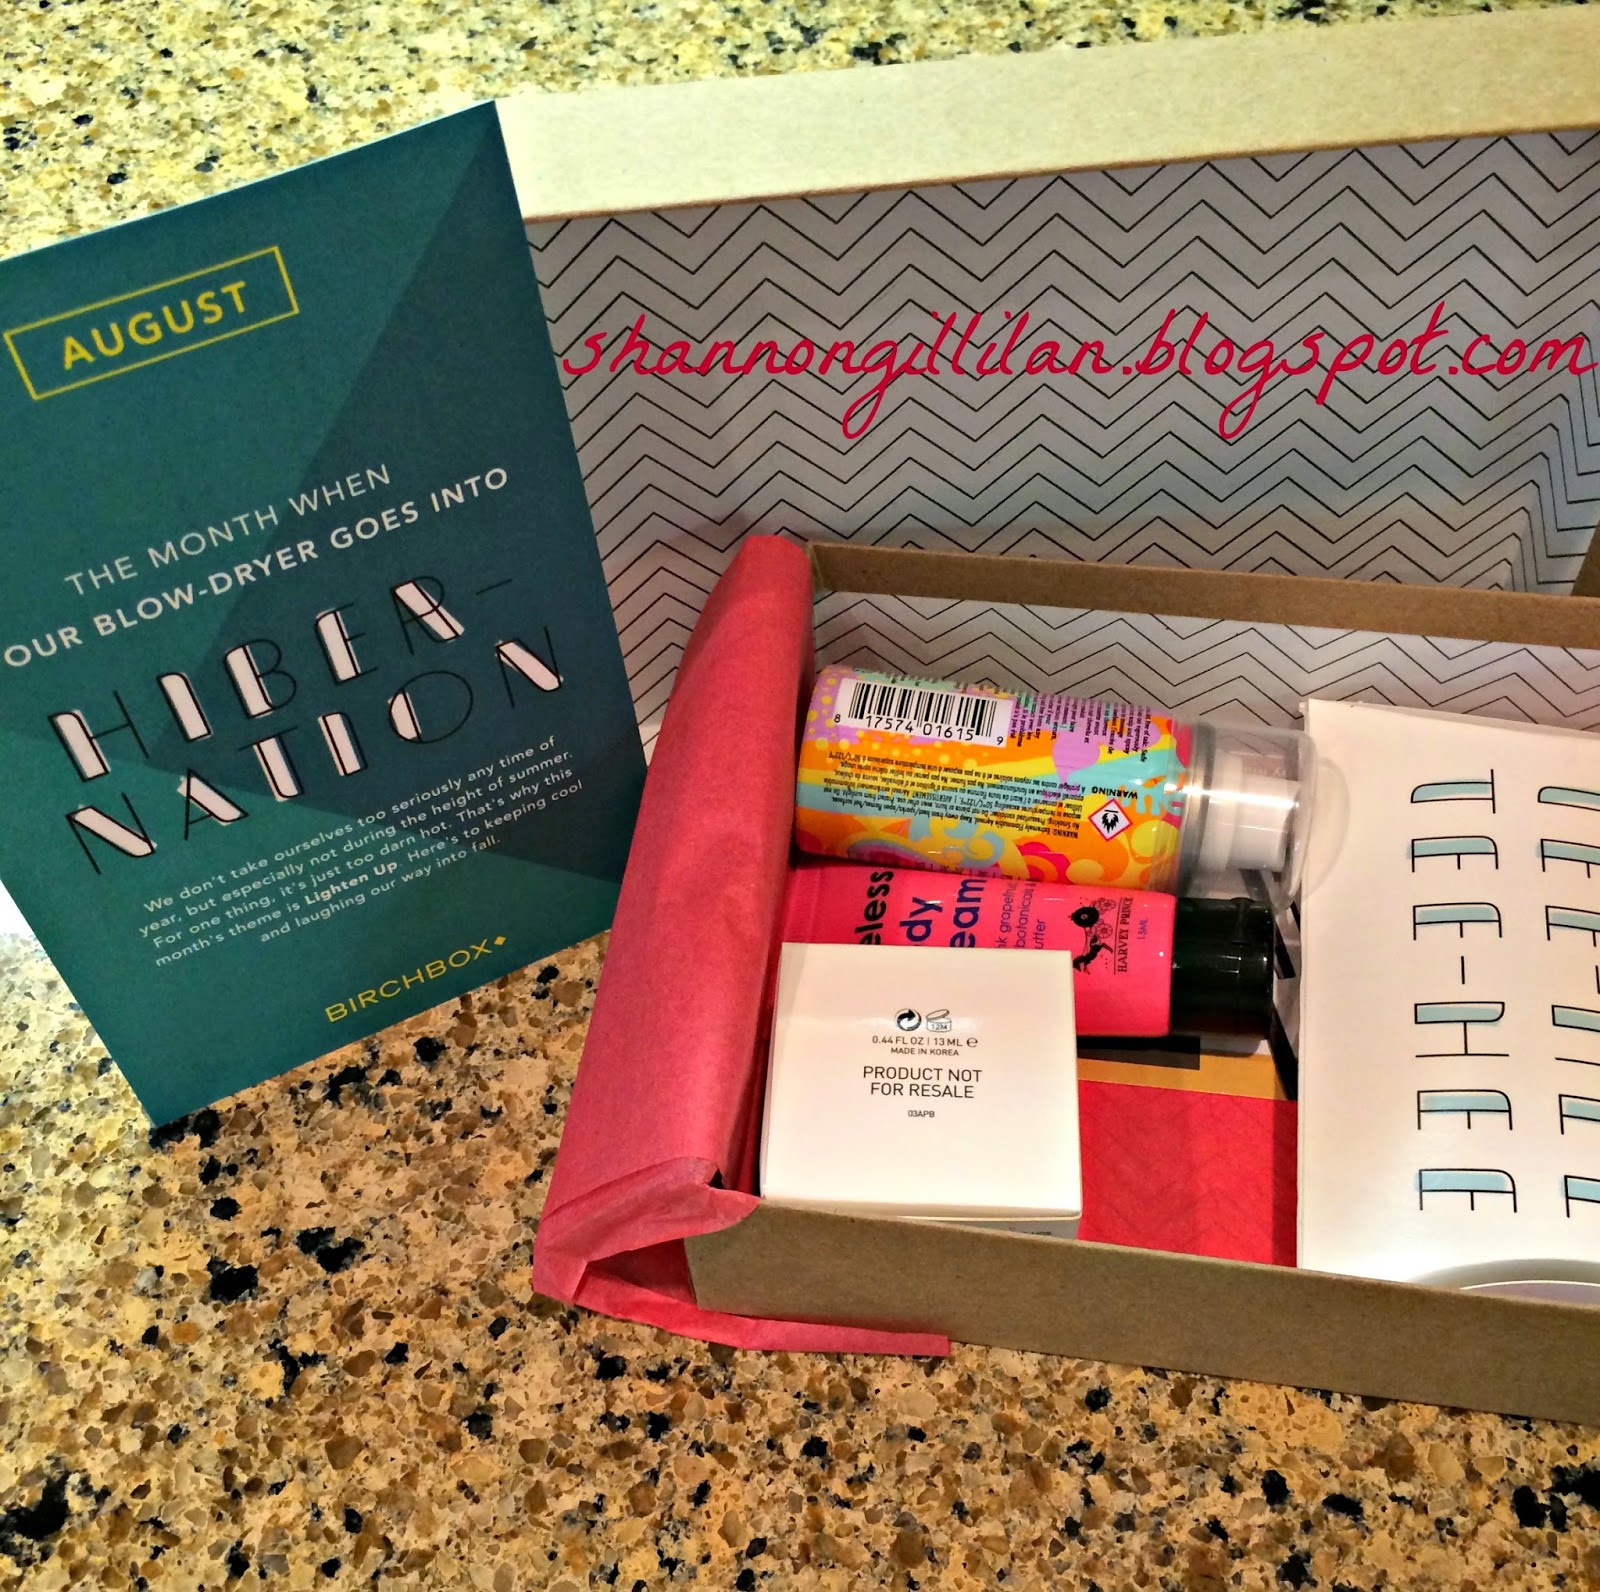 Birchbox Review Beauty www.shannongillilan.blogspot.com